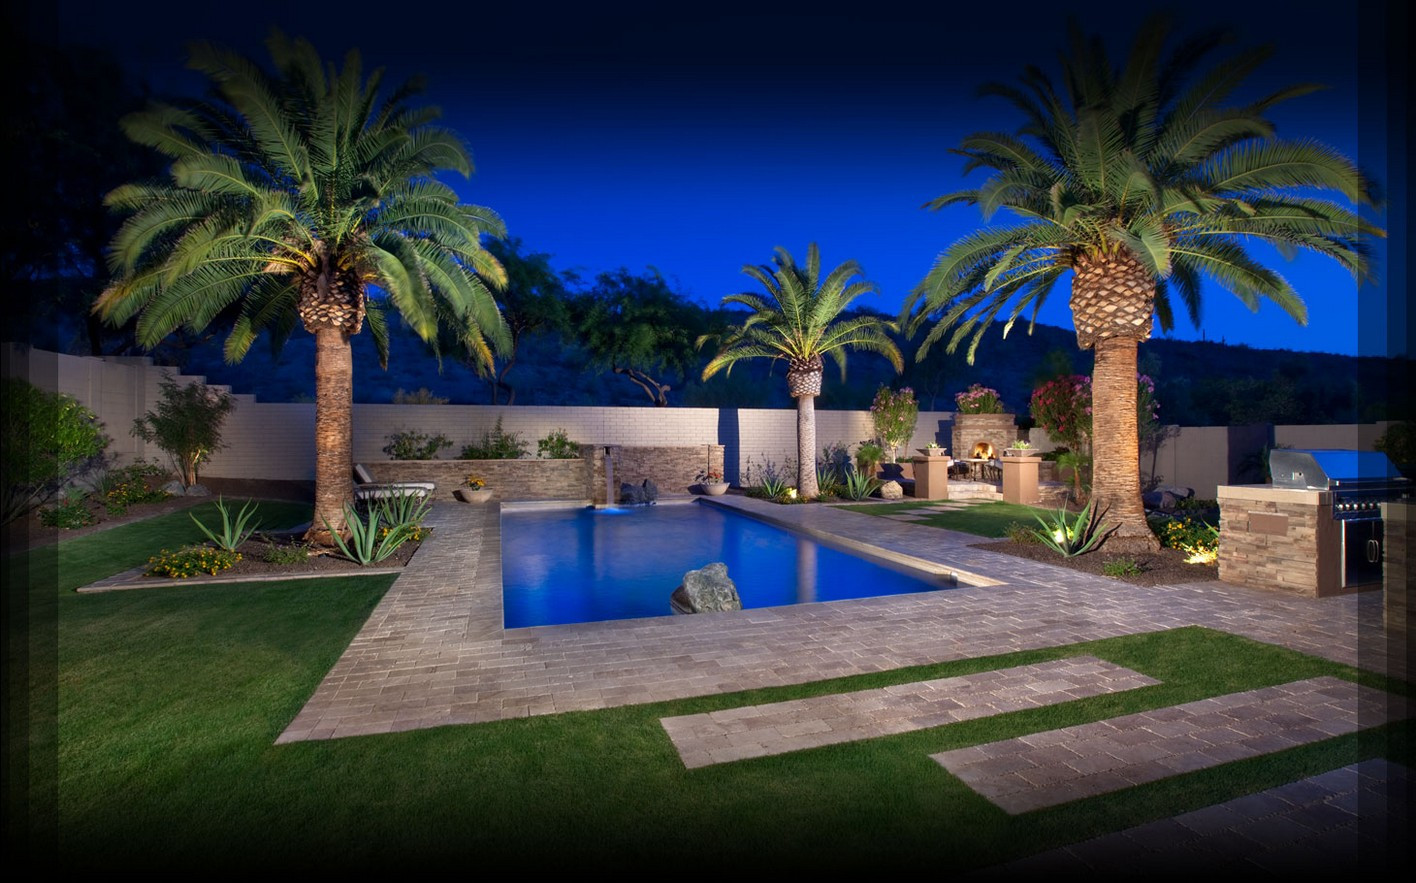 Best ideas about Pool Landscape Ideas . Save or Pin Backyard Pool Designs Ideas to Perfect Your Backyard Now.